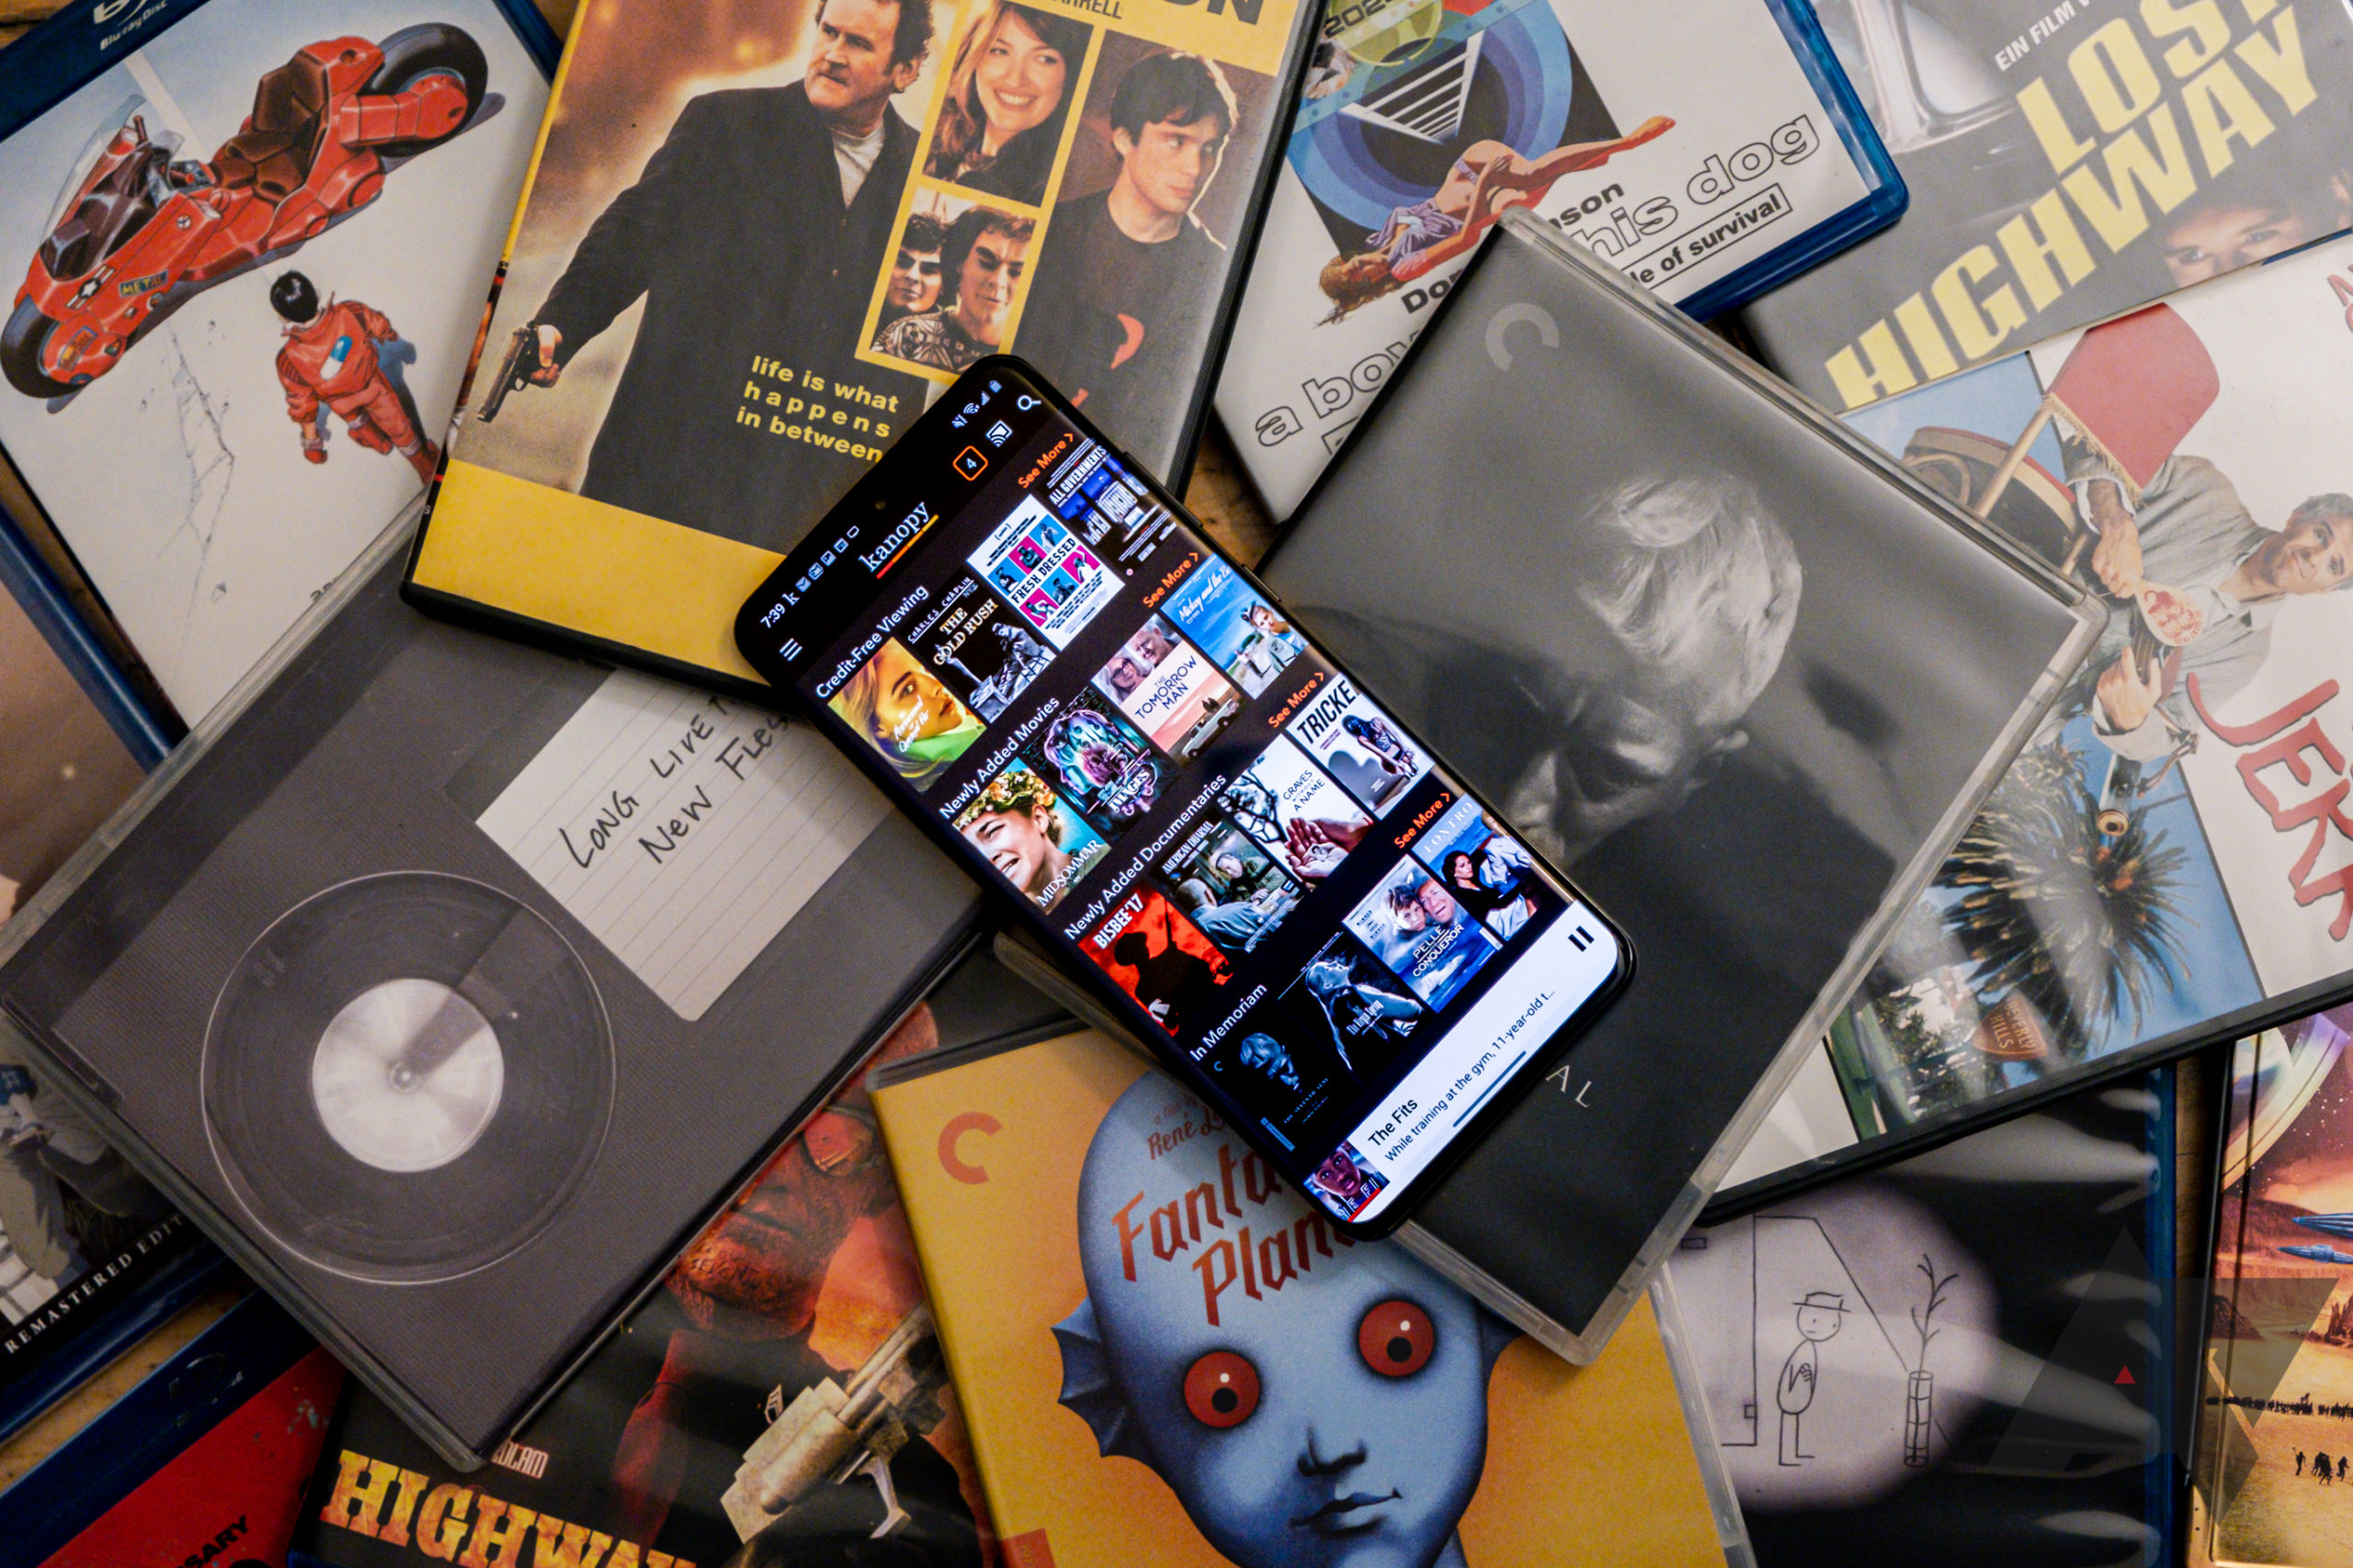 This app gives you free access to tons of movies and other video via your local library